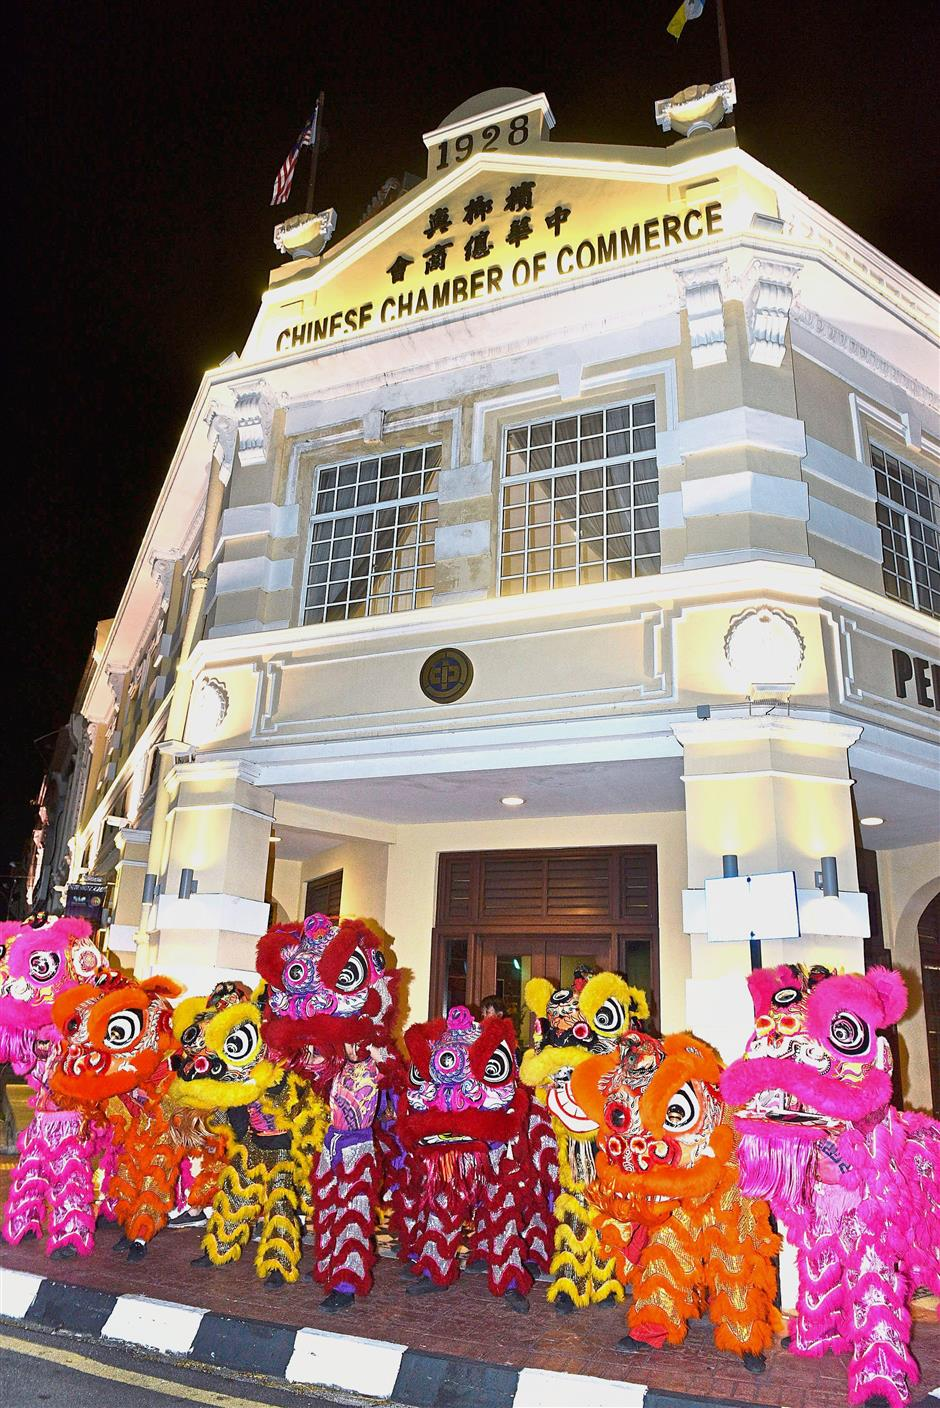 Lion dance troupes performing outside the building during the lighting up ceremony.